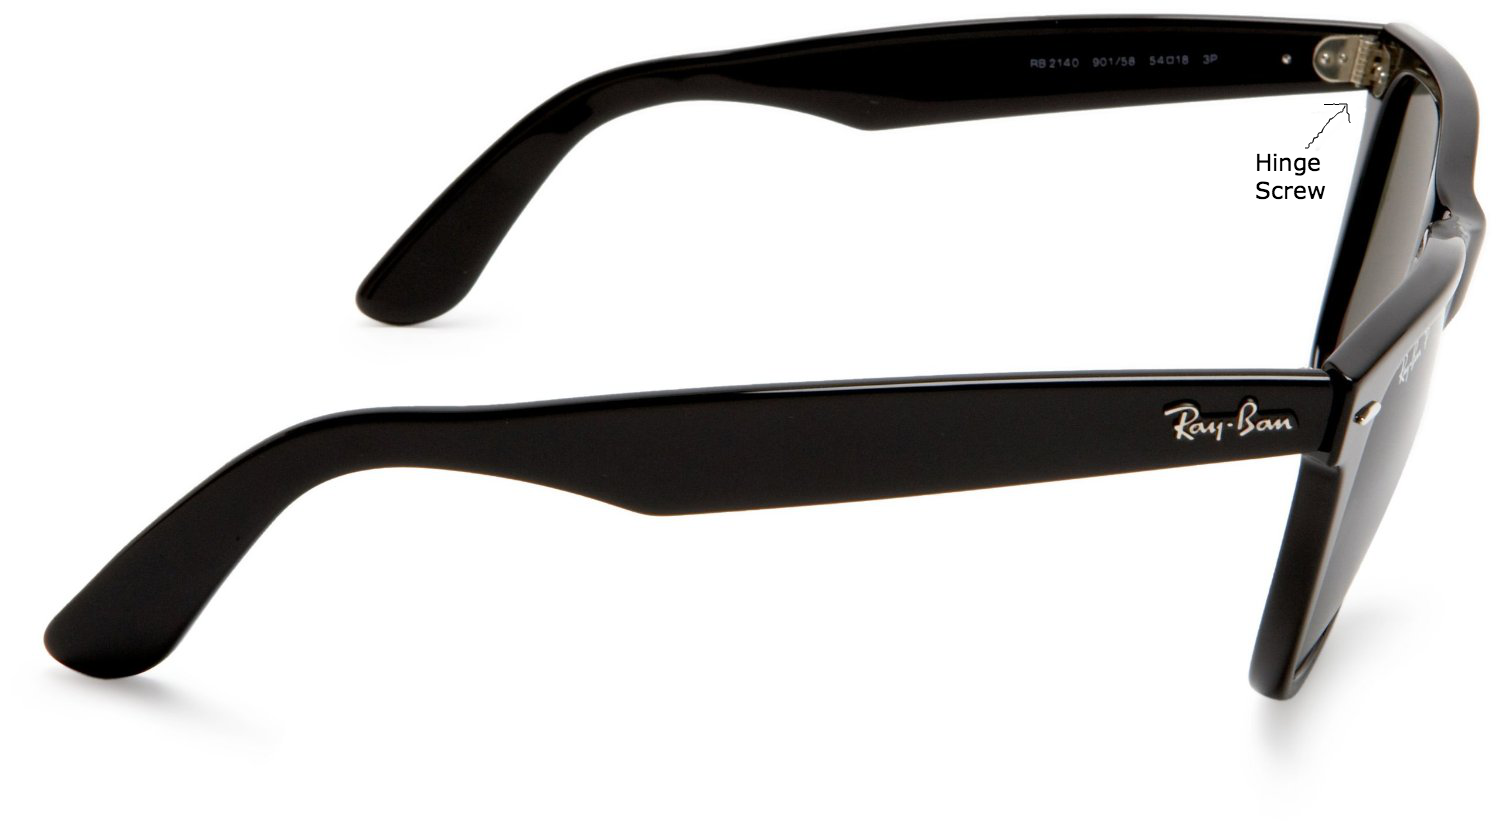 Add an external support for your sunglass with the help of rayban screws